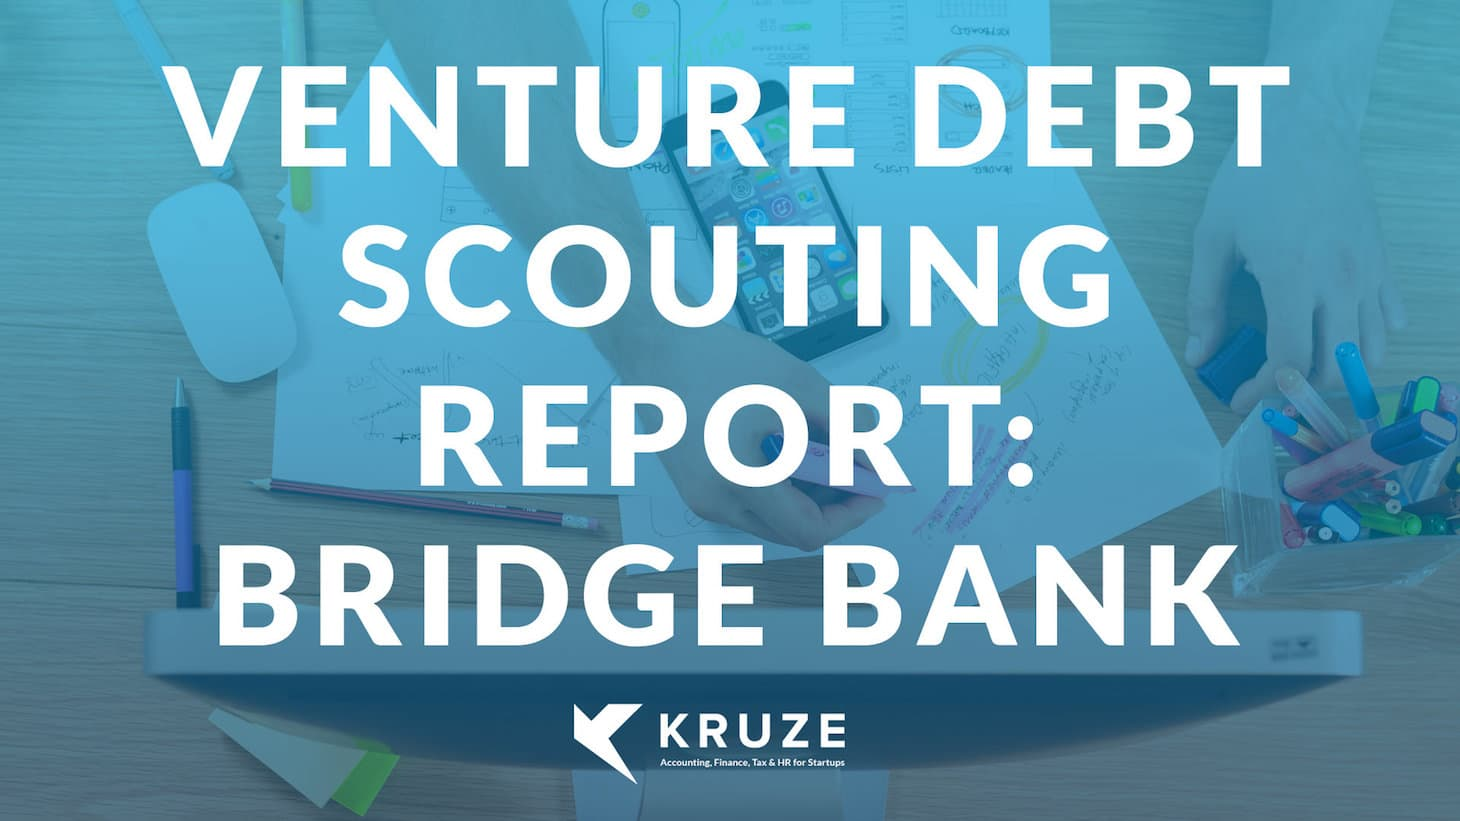 Venture Debt Scouting Report: Bridge Bank